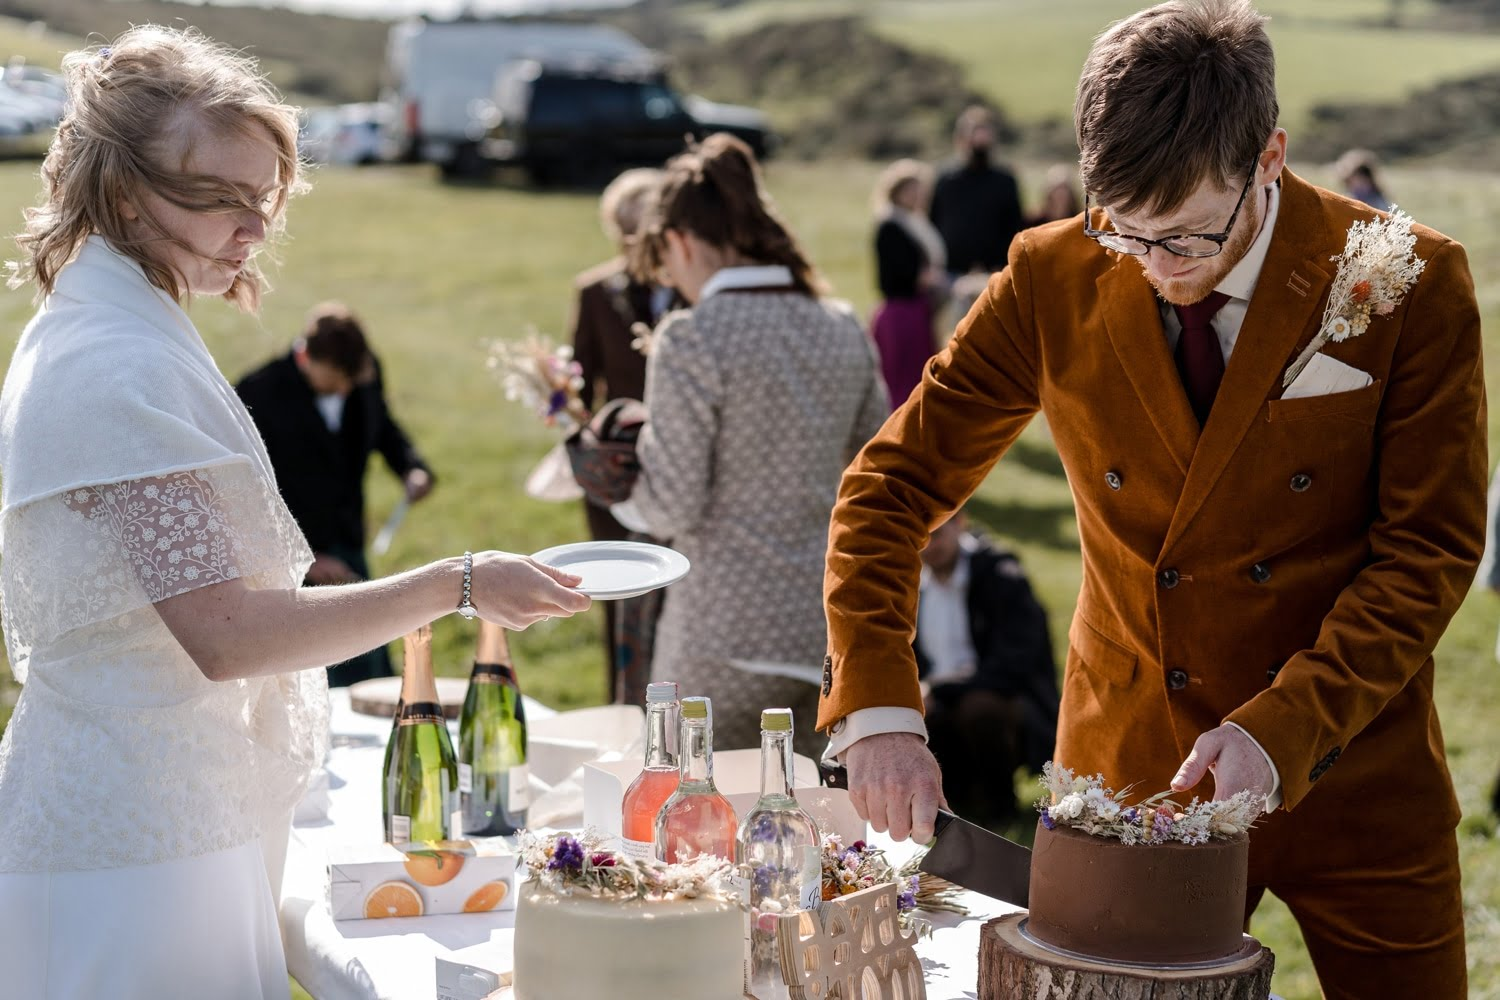 Cake being served at Mwnt following wedding ceremony during covid restrcitions